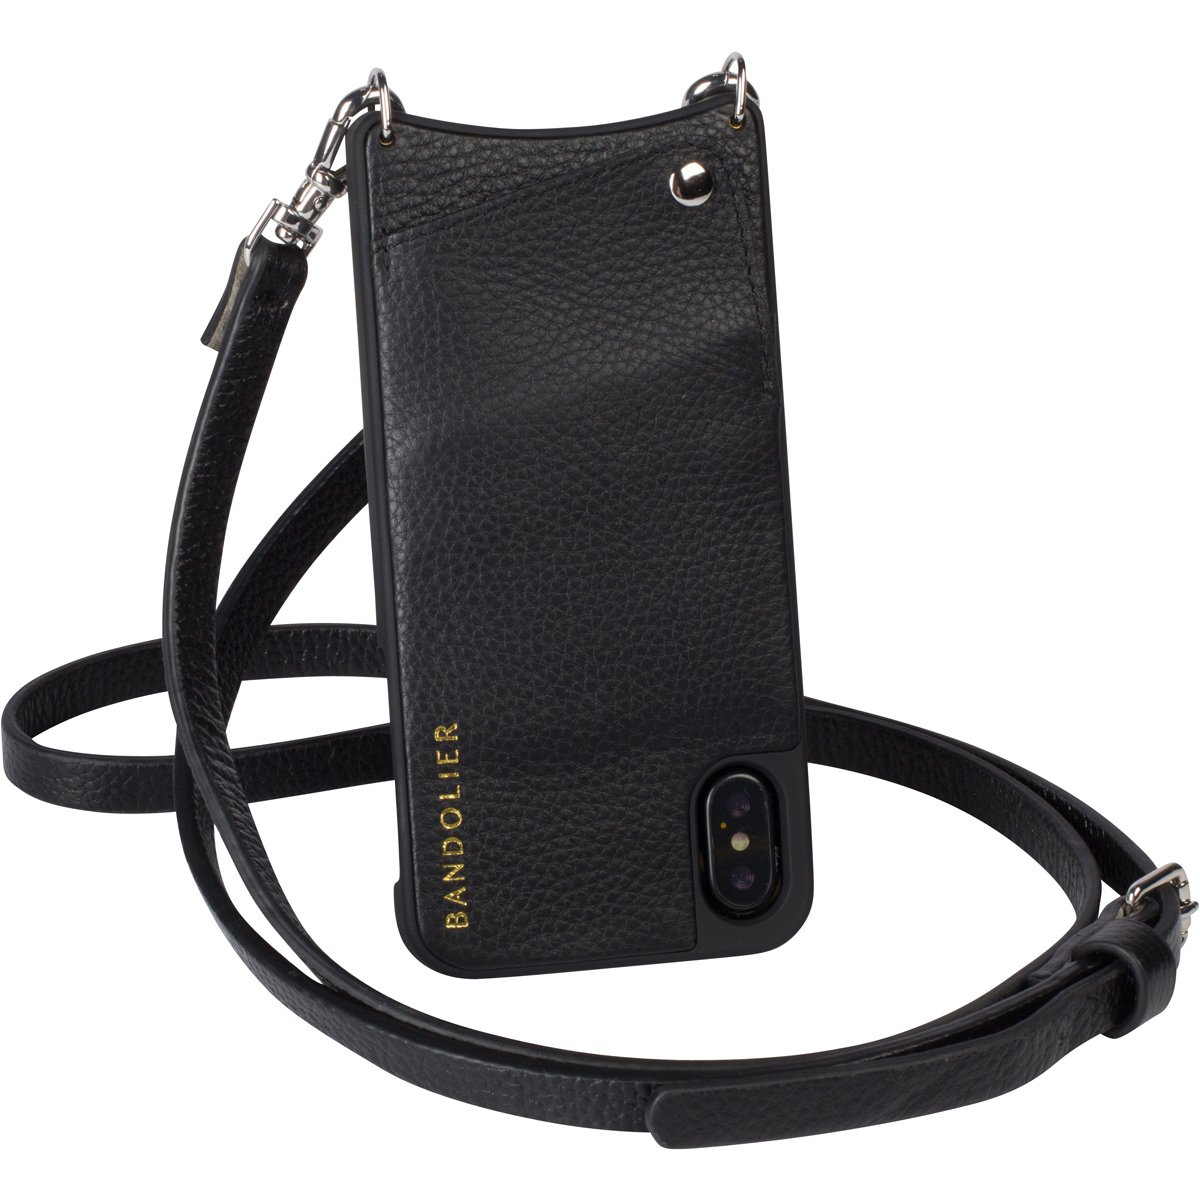 Bandolier [Emma] Crossbody Phone Case and Wallet - Compatible with iPhone X & XS - Black Leather with Silver Accent